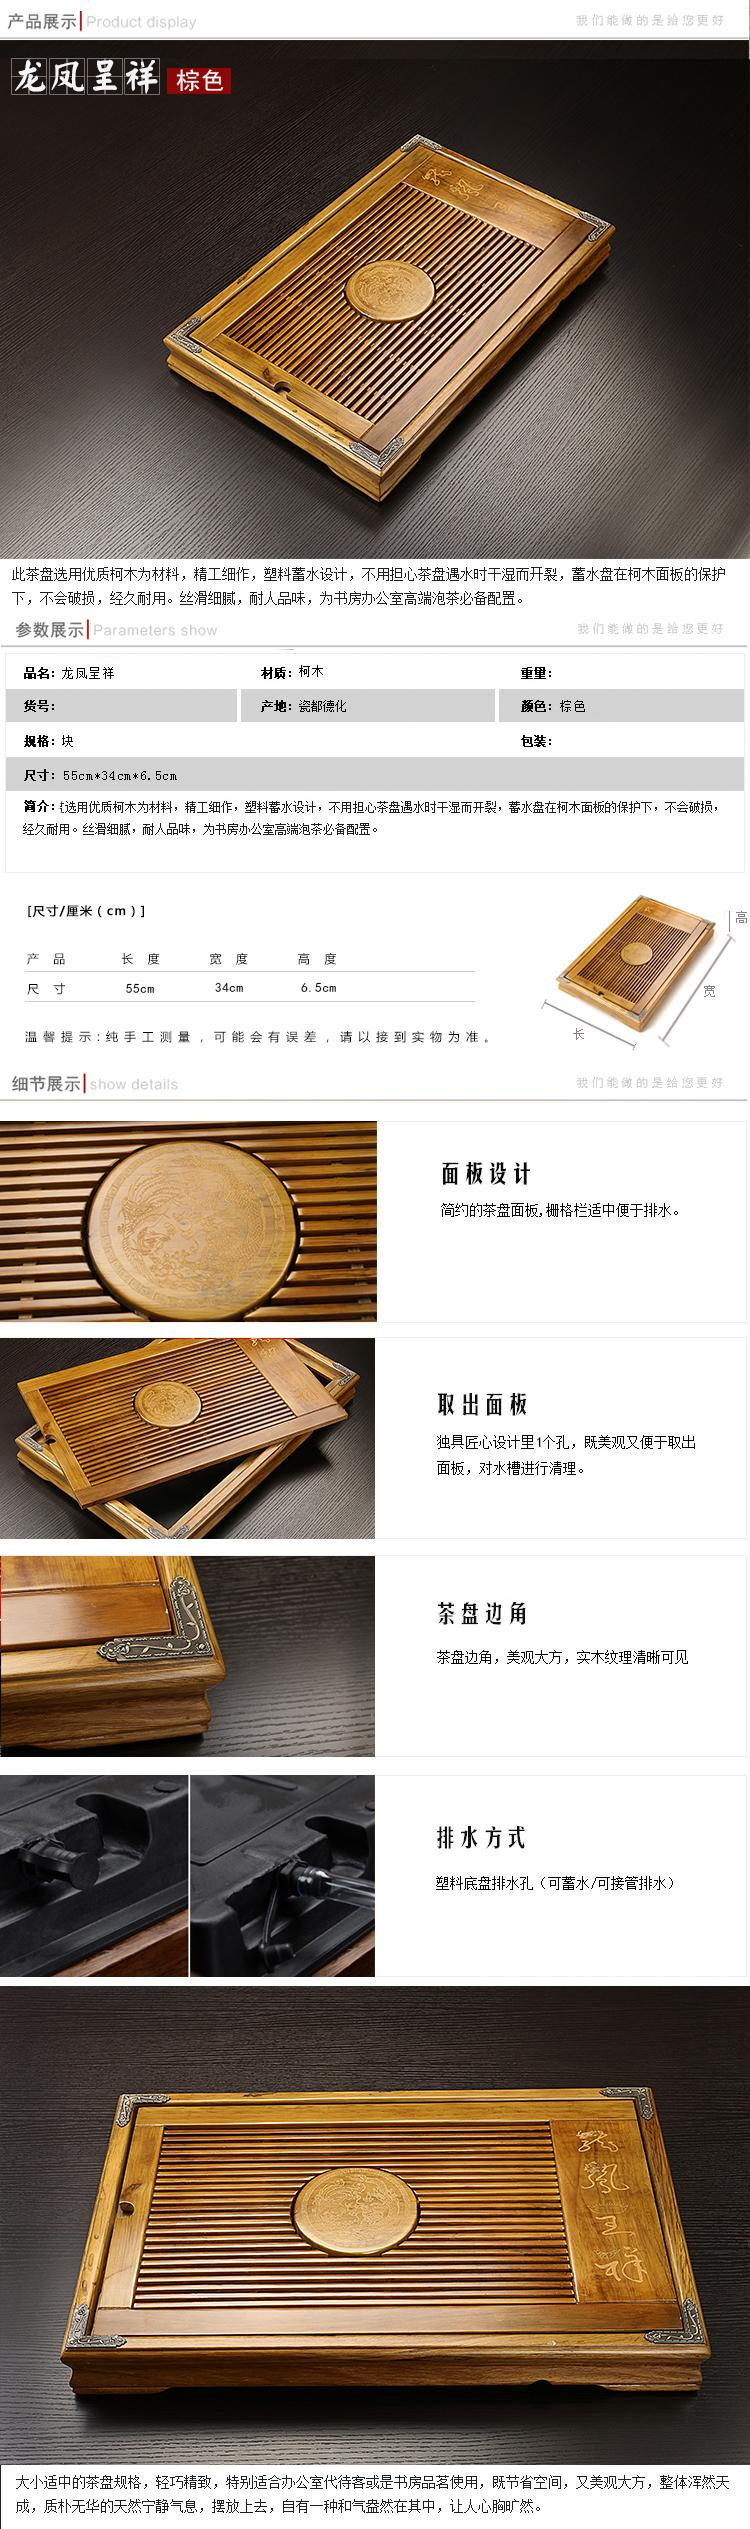 Chinese Tea Tray ***实木茶盘***龙&#40175..